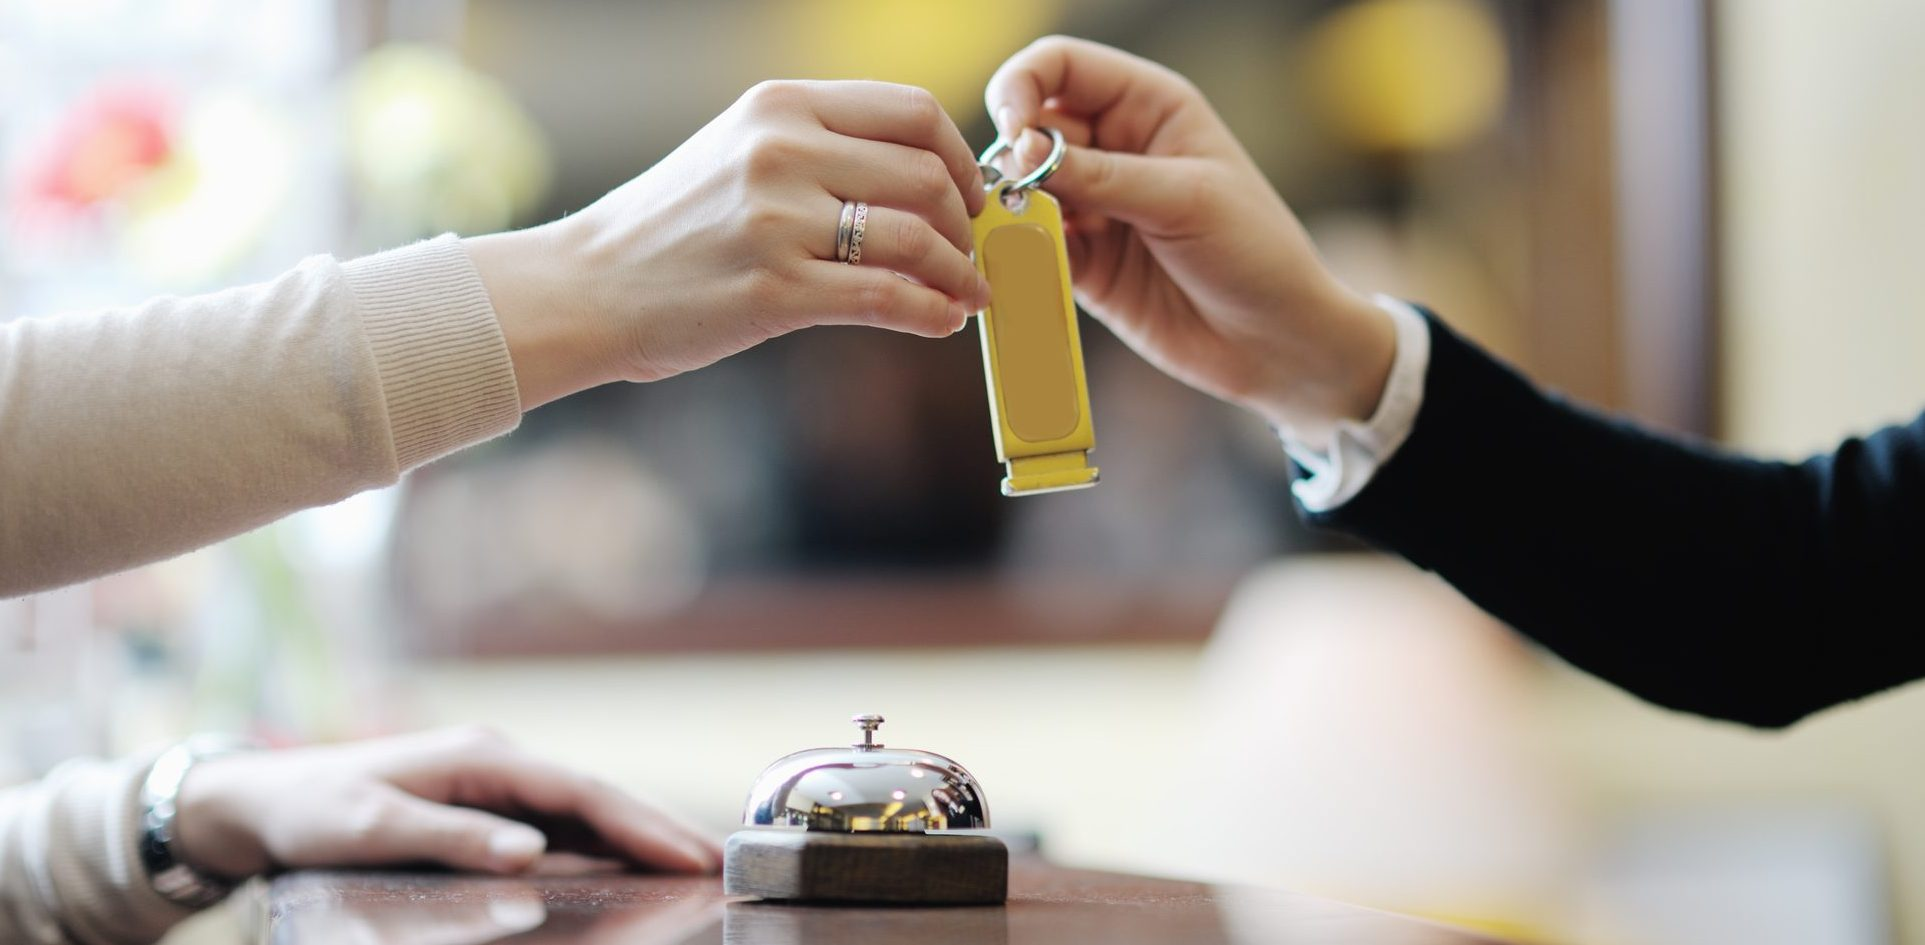 Booking Your Own Hotel Saves Money